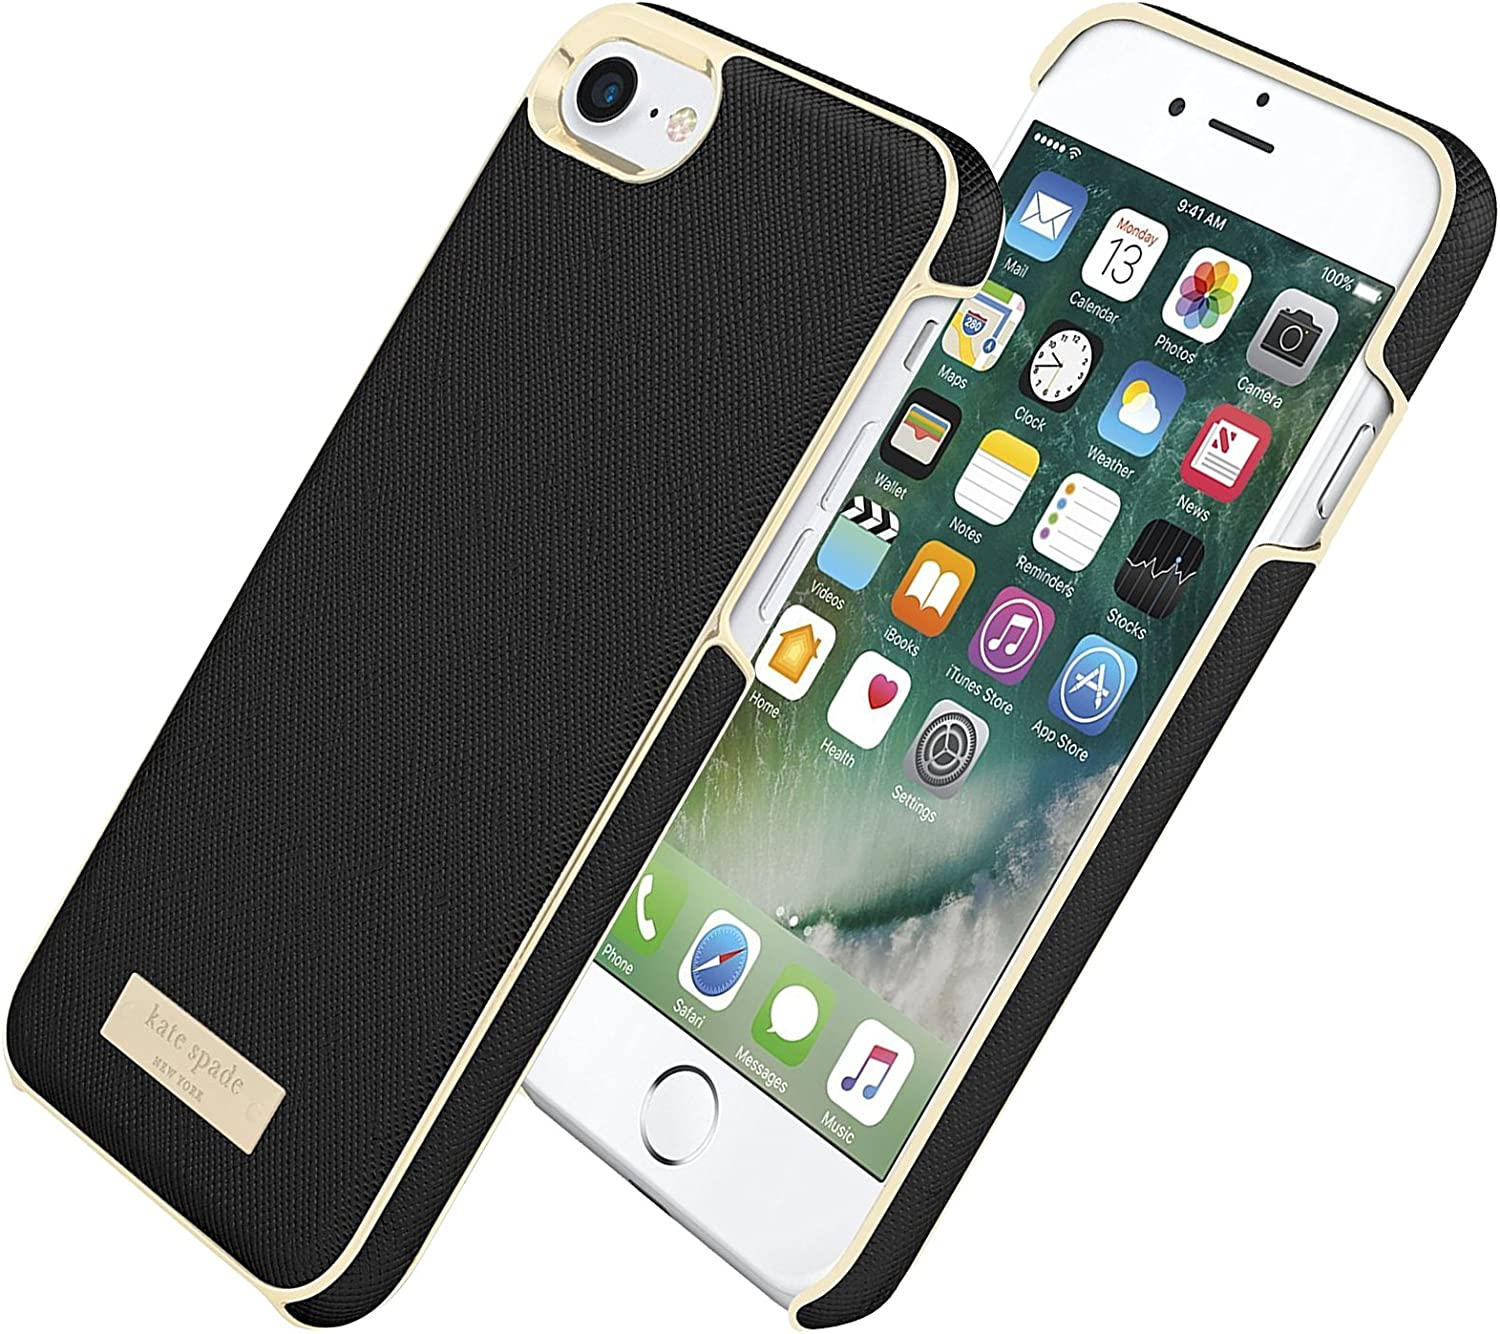 kate spade new york Saffiano leather Wrap Case for iPhone 7 - Saffiano Black/Gold